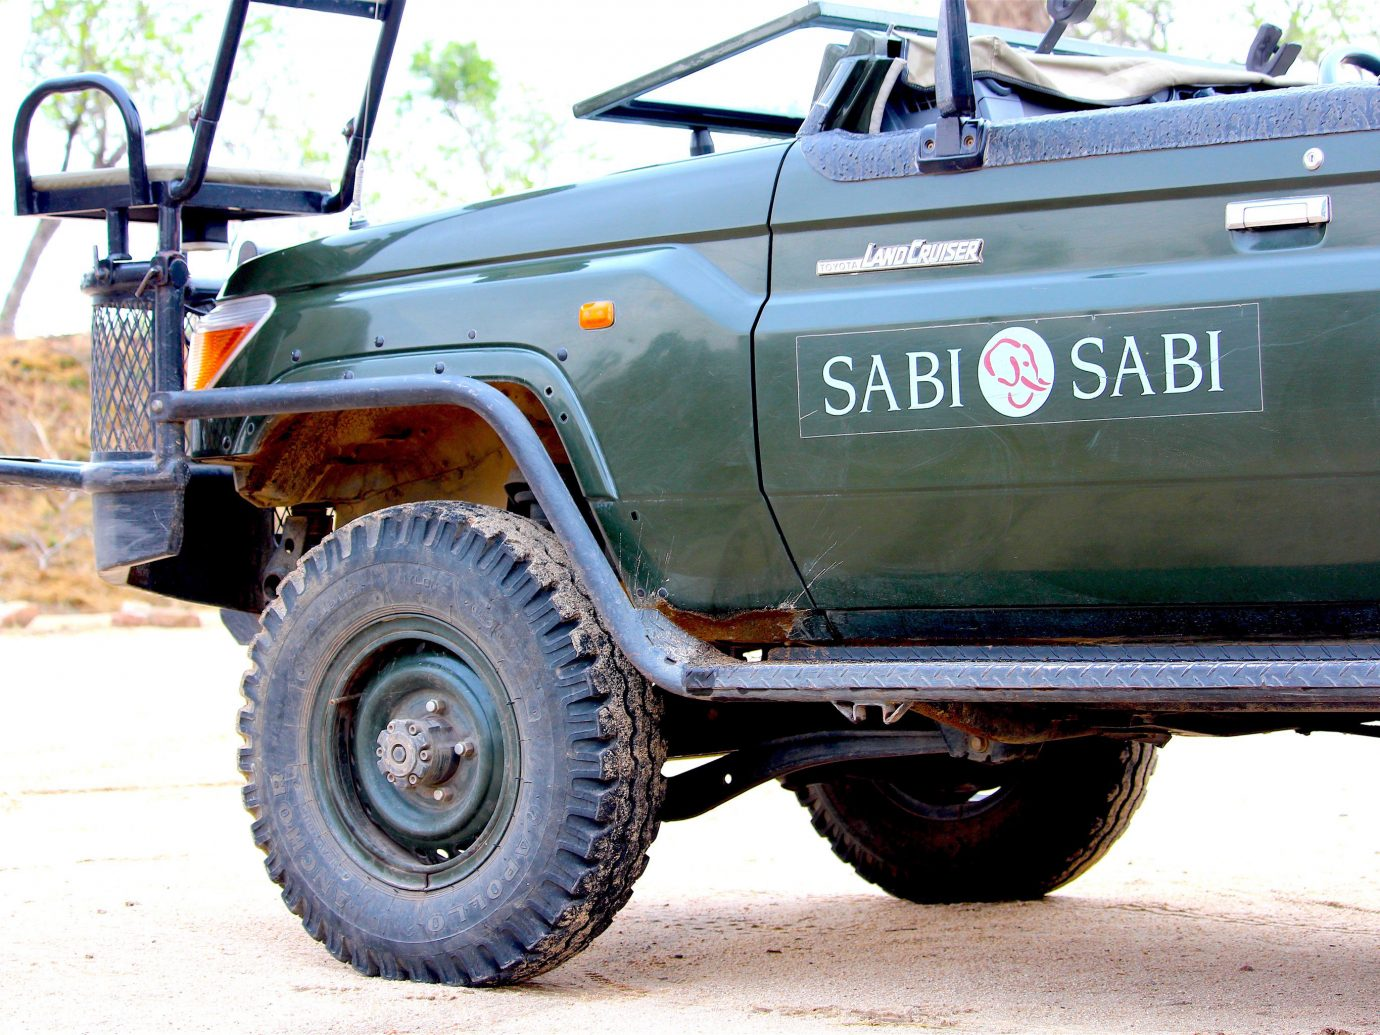 Outdoors + Adventure Safaris Trip Ideas car outdoor truck motor vehicle ground vehicle land vehicle transport parked off roading pickup truck automotive exterior wheel automobile make jeep sport utility vehicle compact sport utility vehicle off road vehicle bumper military vehicle antique car